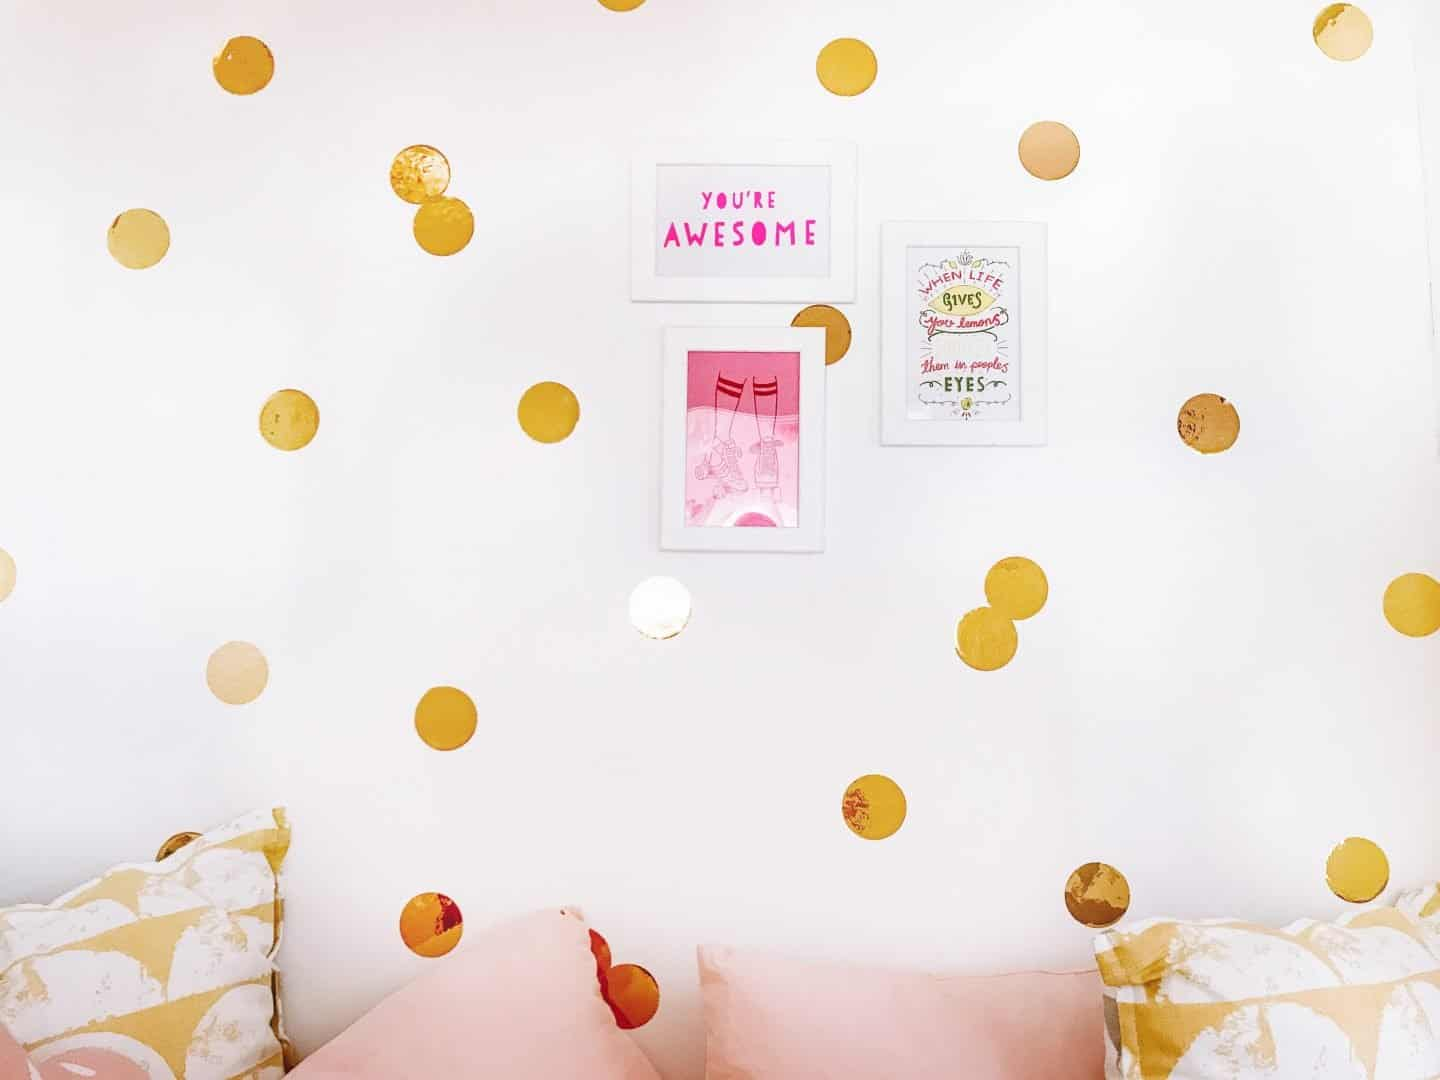 White wall with gold circular wall decals and white framed postcards